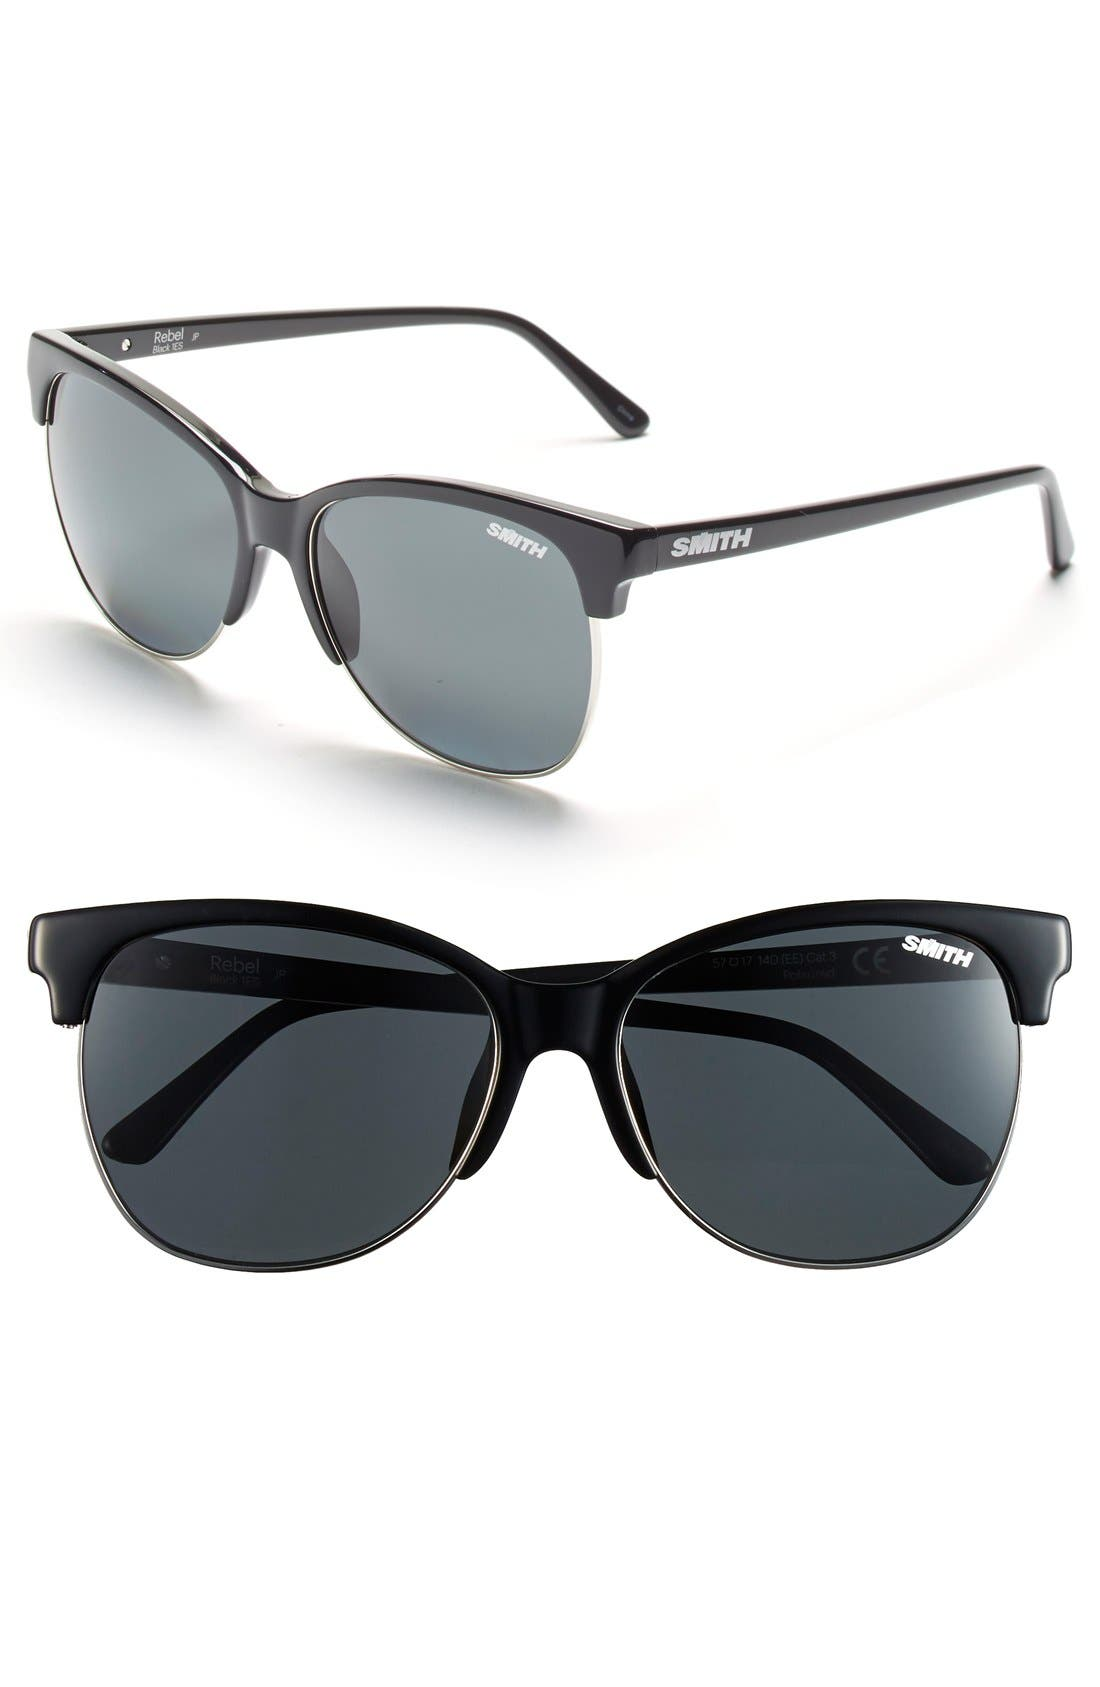 SMITH Rebel 57mm Cat Eye Sunglasses